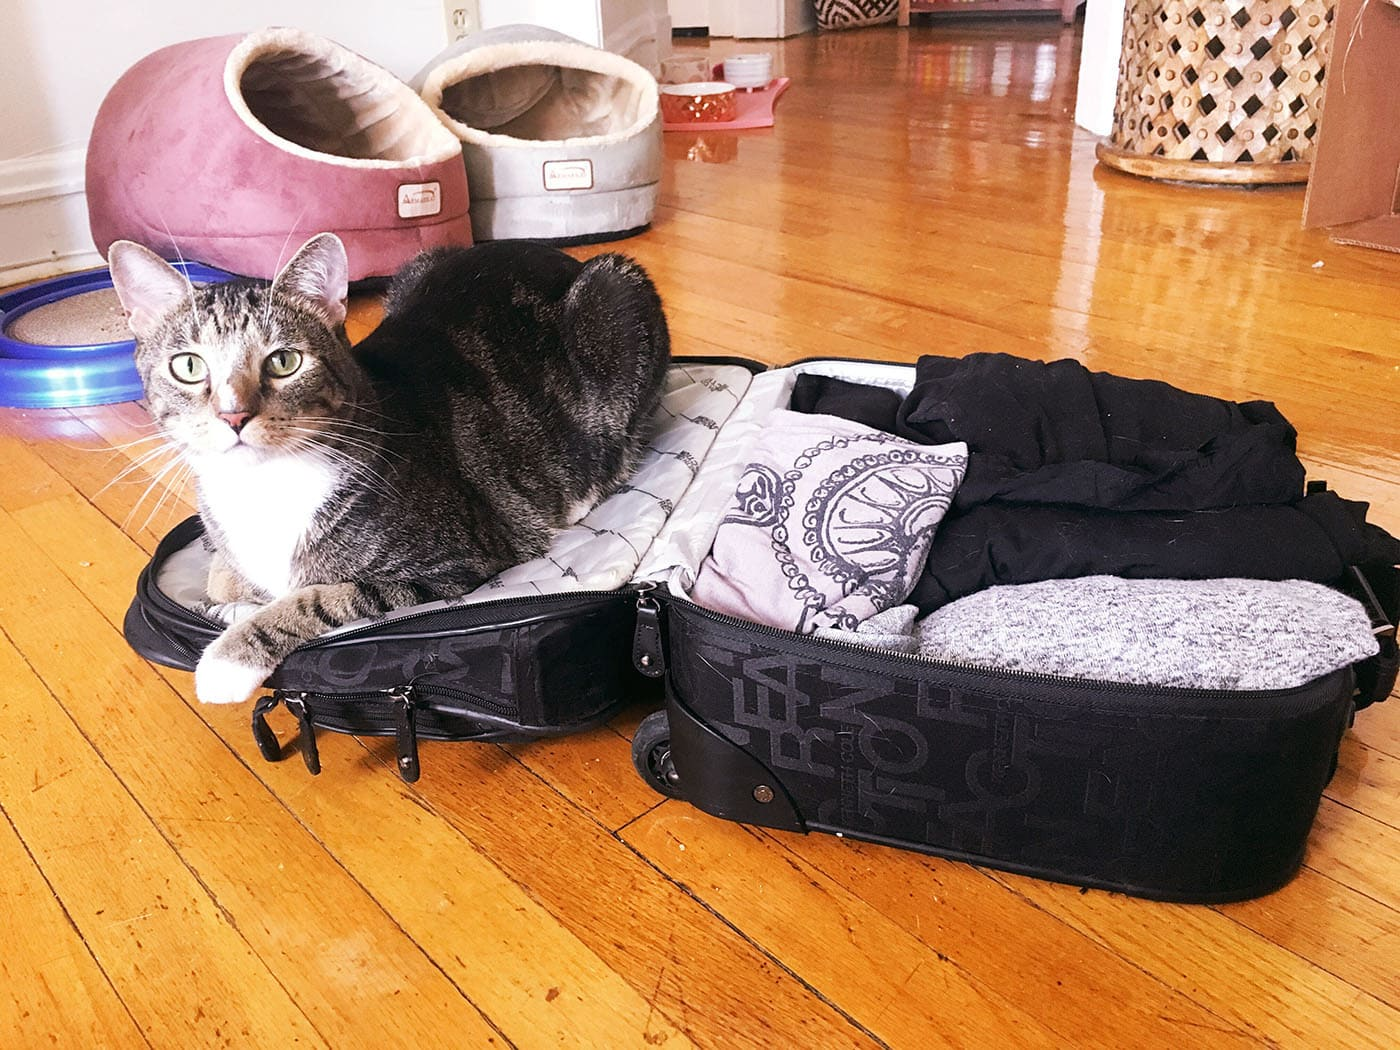 Packing for my vacation in New York. My cat wanted to come with.